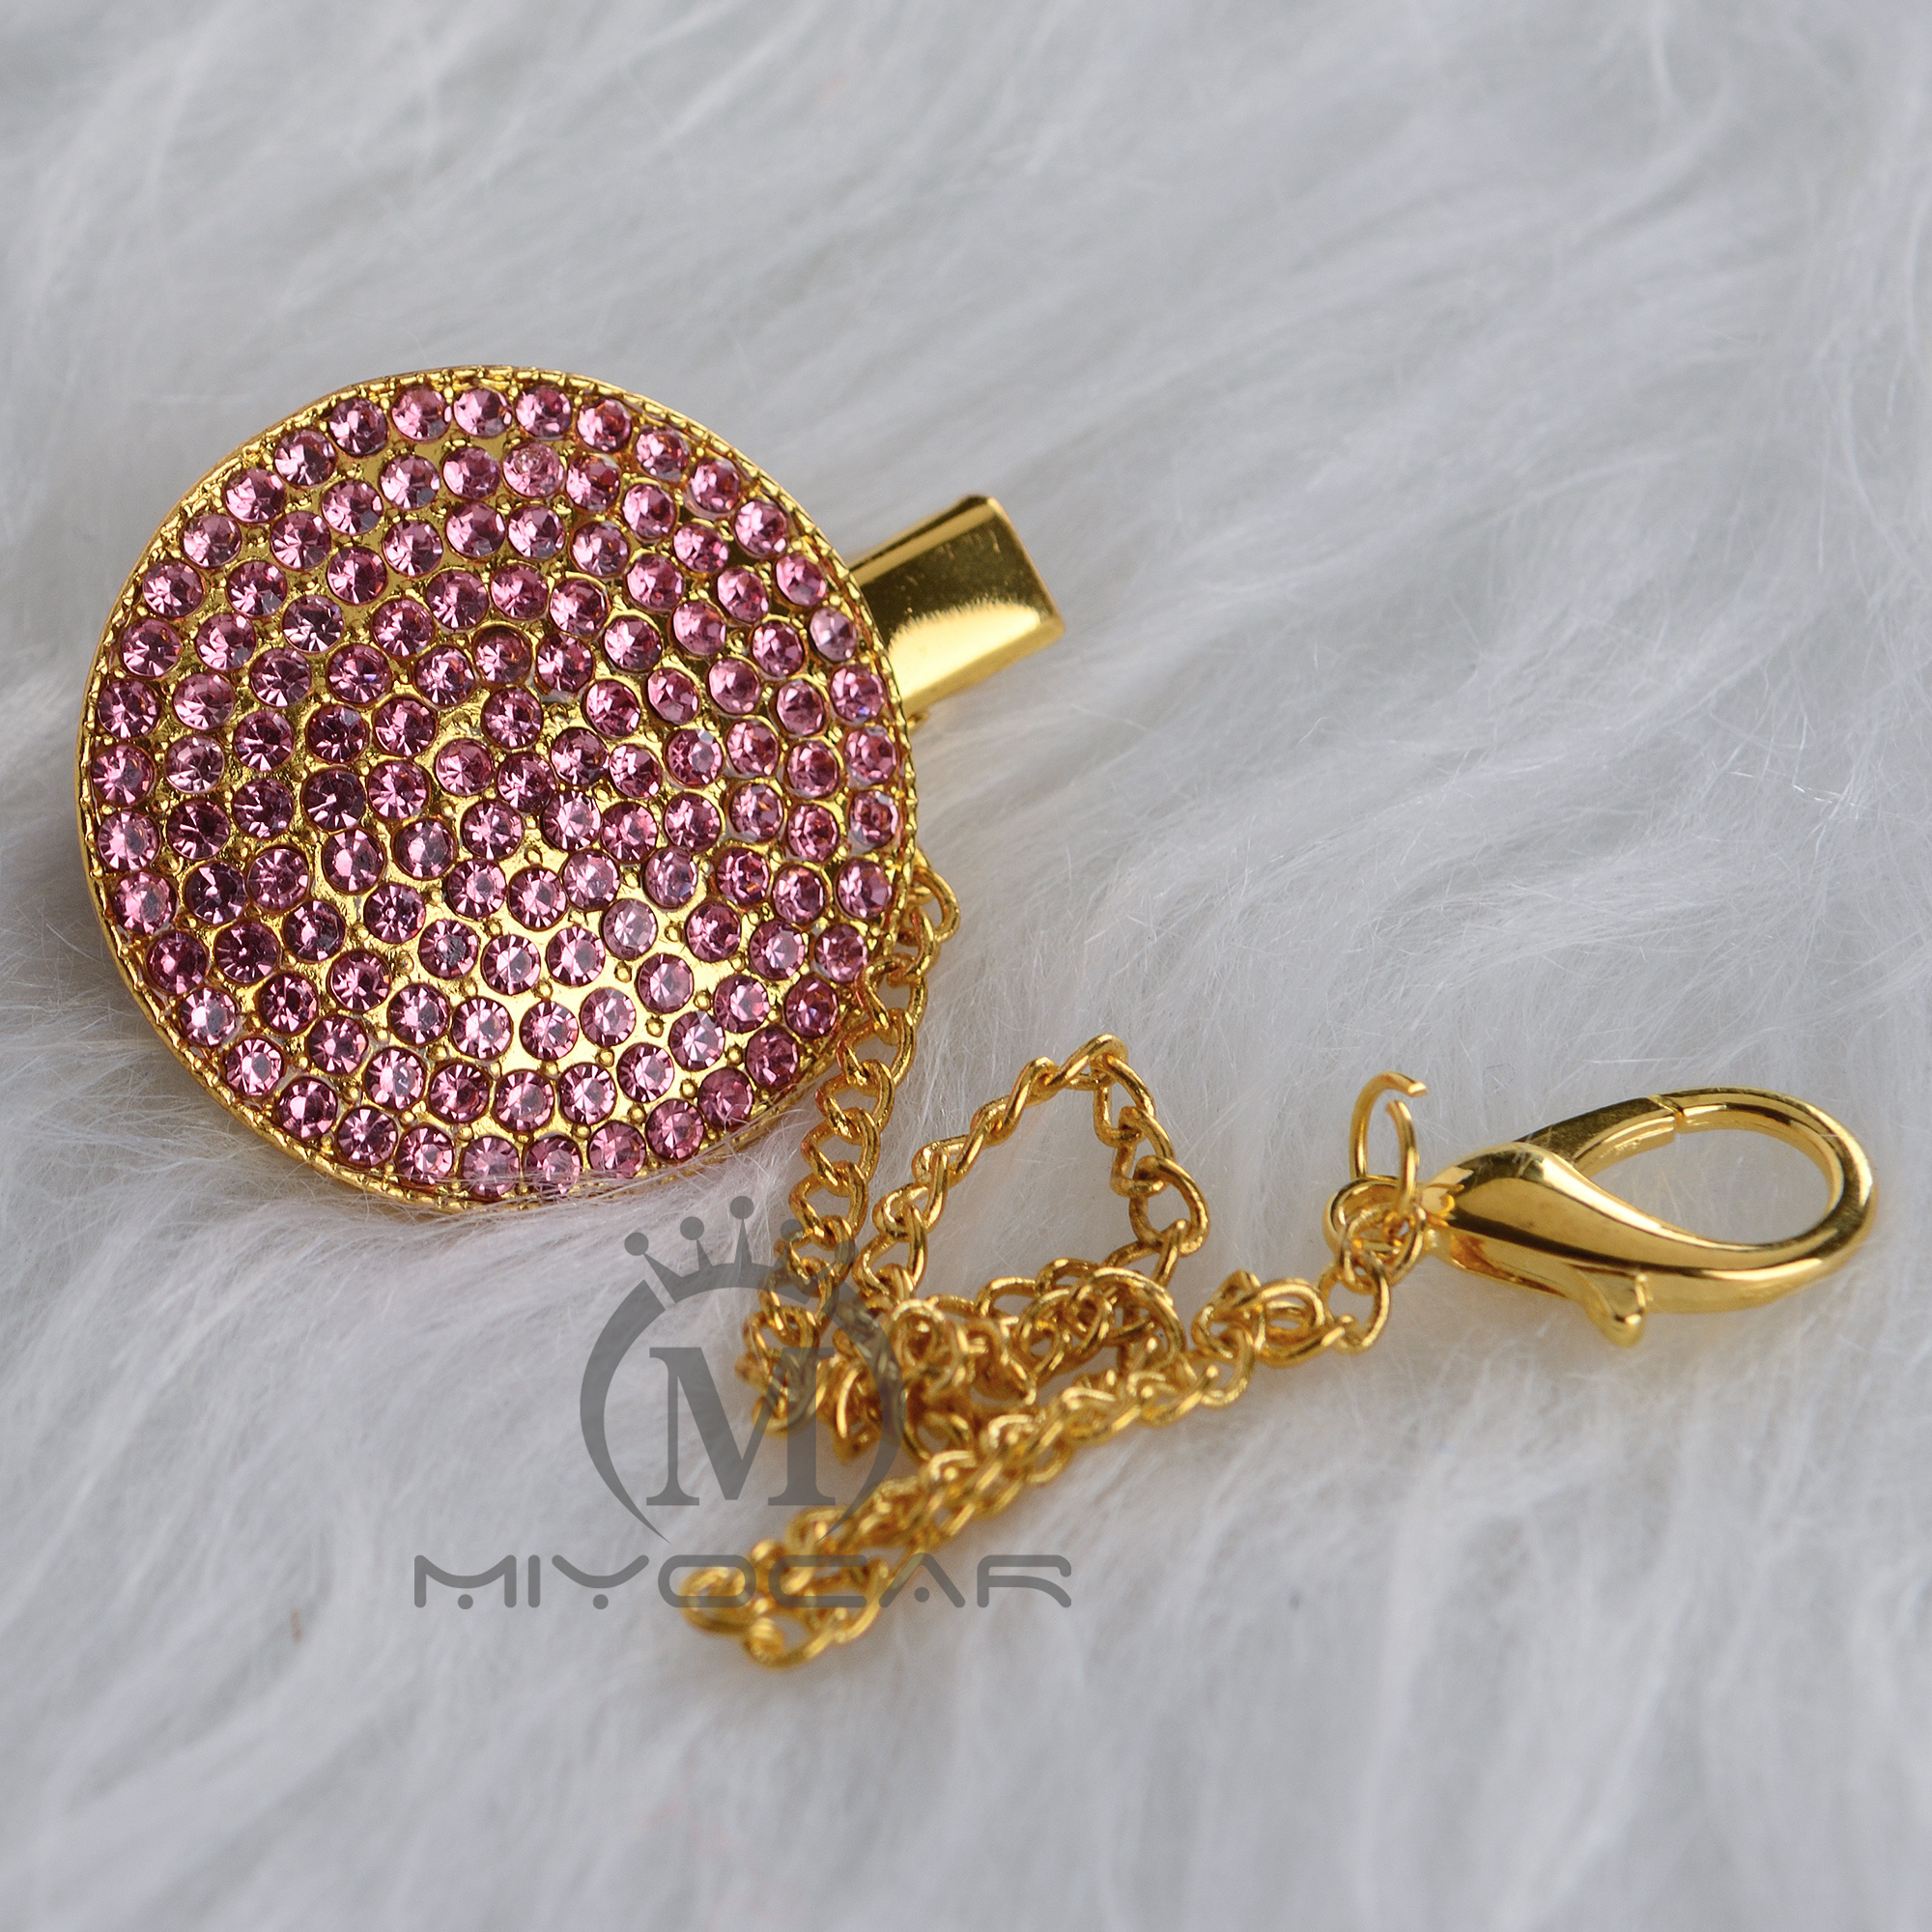 MIYOCAR Bling Bling Pink Princess Pacifier Clip Pacifier Holder Chain Dummy Clip Metal Chain Safe To Baby CH-7